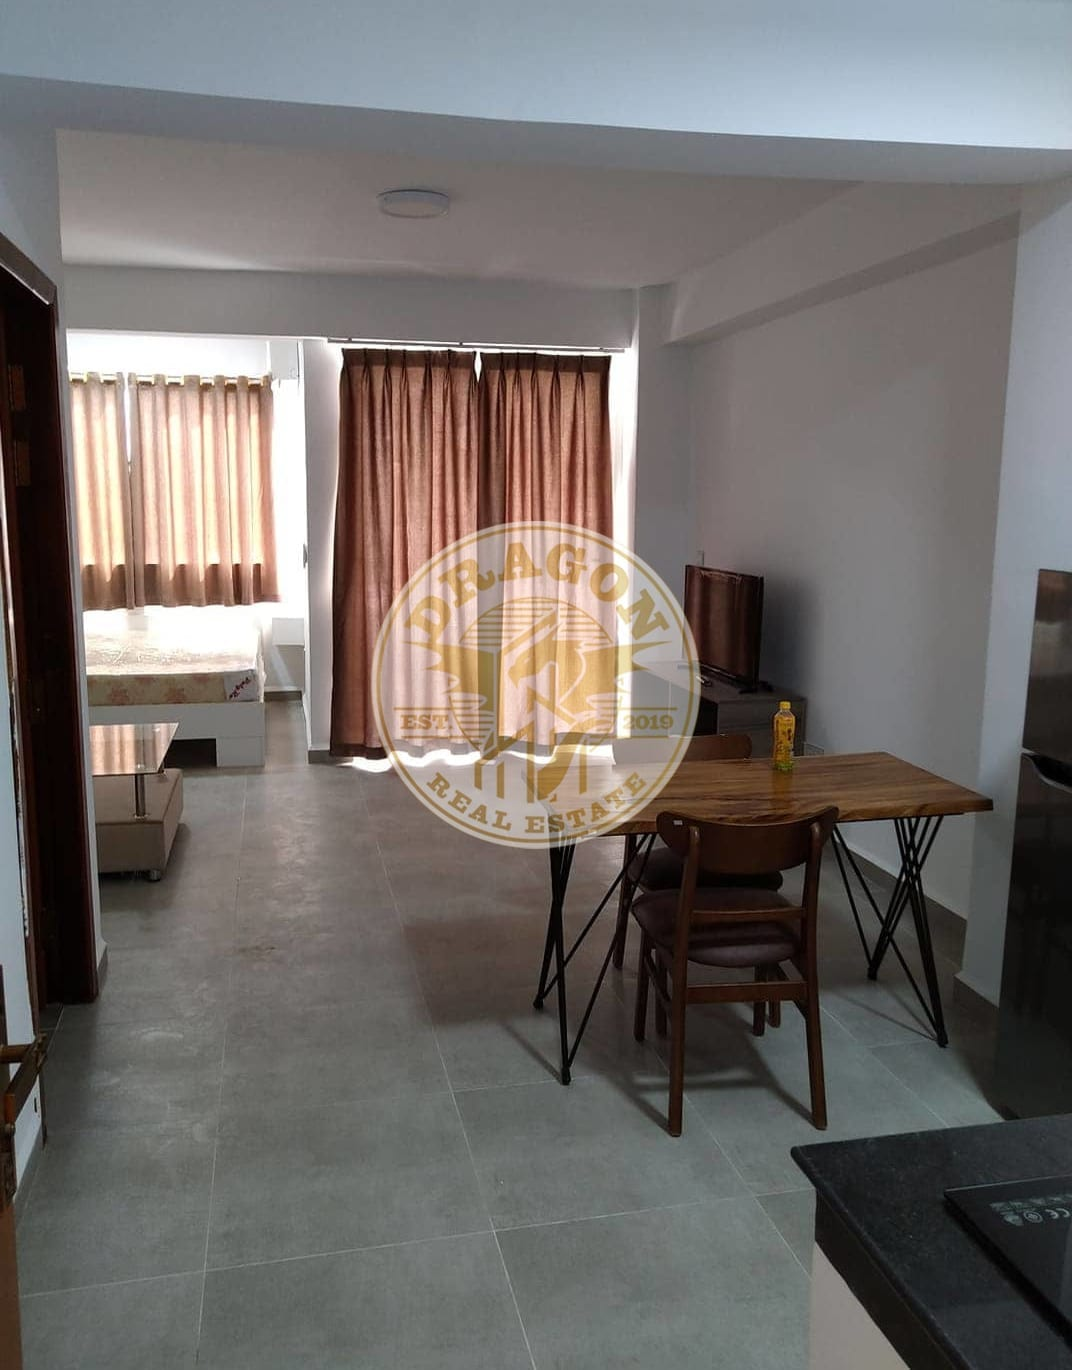 Useful Unit for Rent. Rooms for Rent in Sihanoukville Cambodia